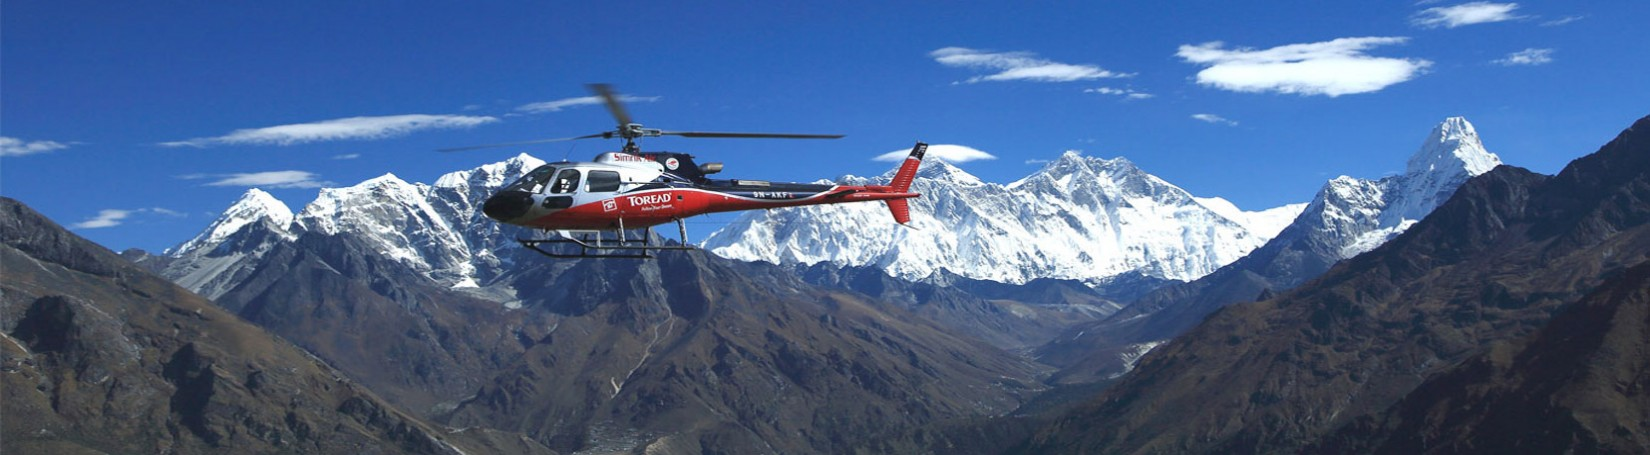 Helicopter Flight at Everest region